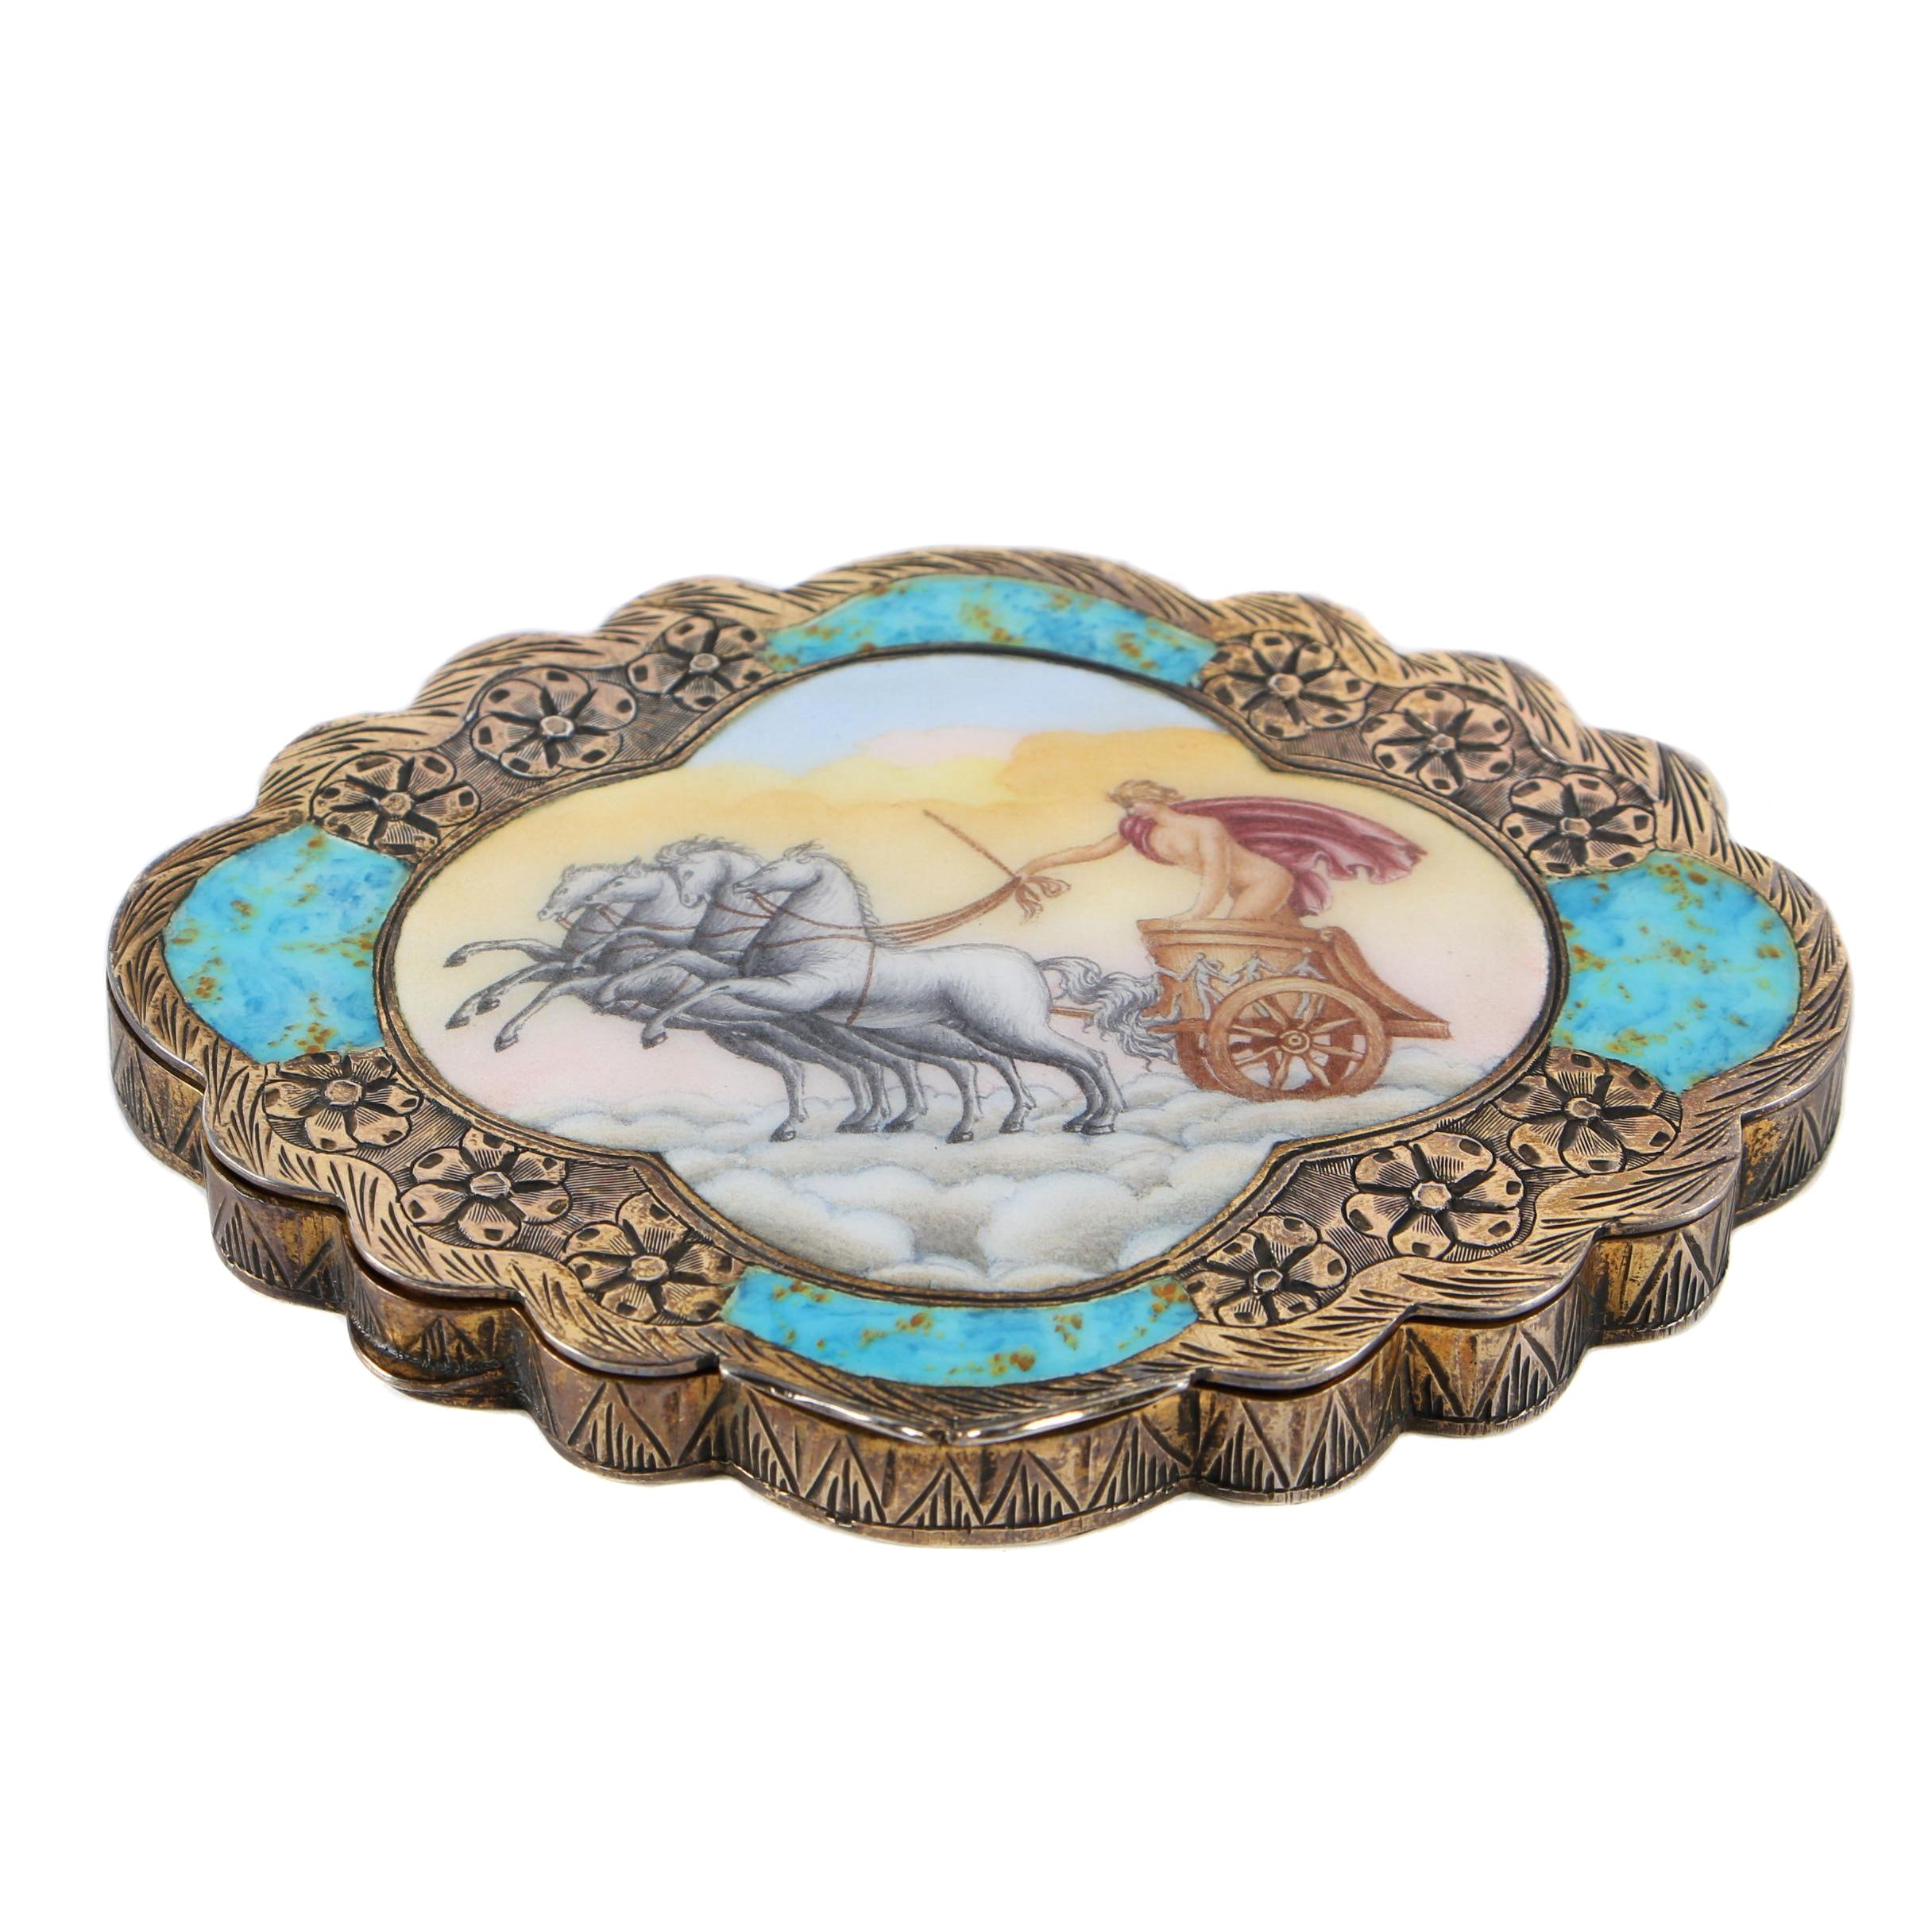 Italian Neoclassical Gilt 800 Silver and Enamel Compact, 20th Century